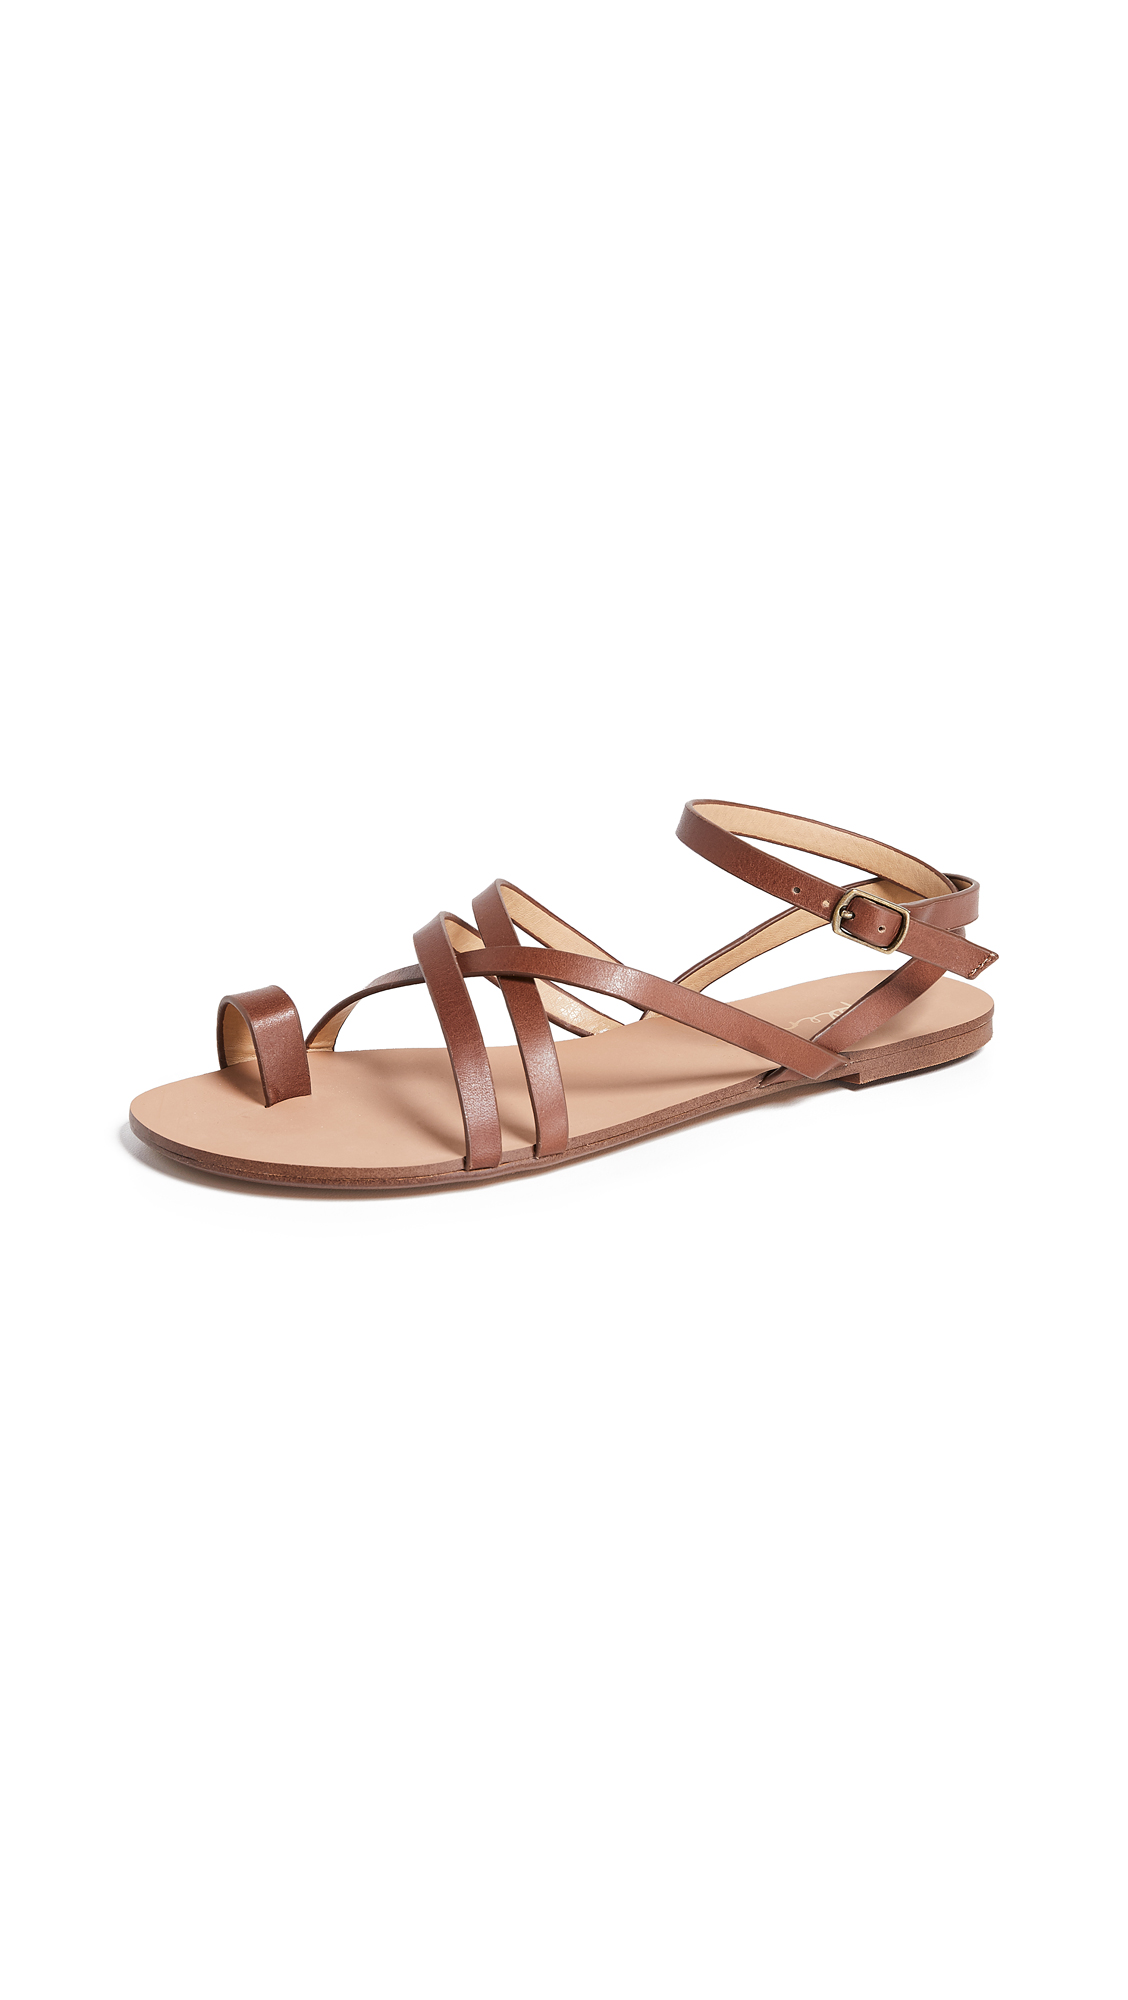 Splendid Sully Strappy Sandals - Chestnut